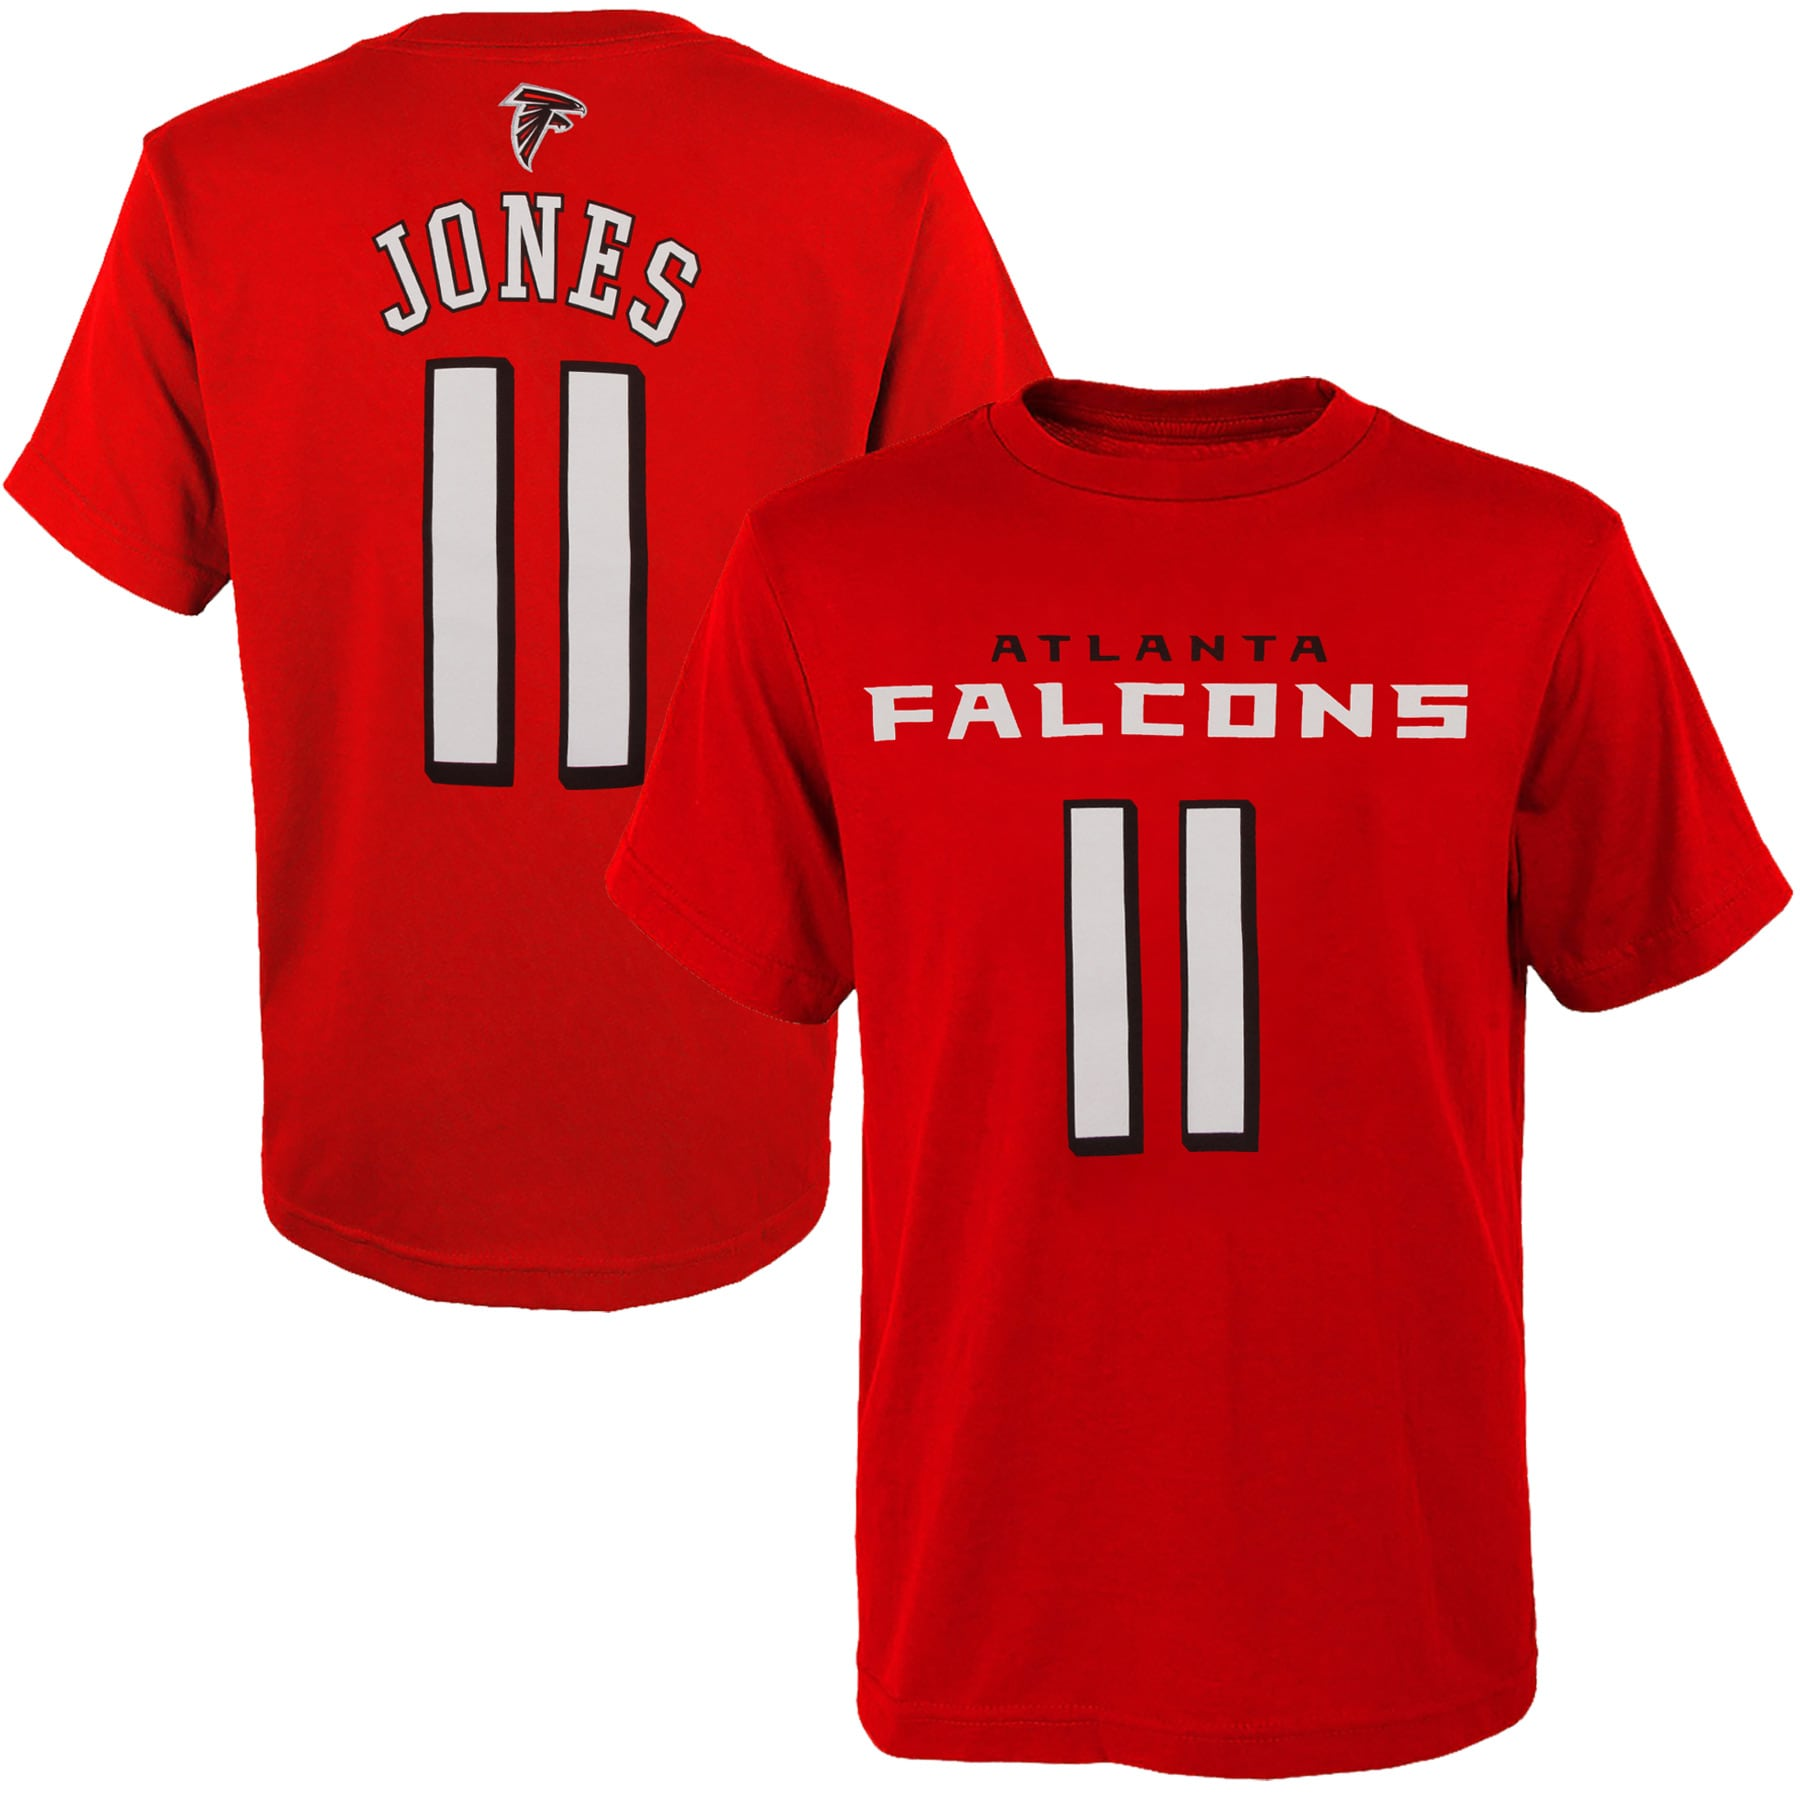 Julio Jones Atlanta Falcons Youth Mainliner Player Name & Number T-Shirt - Red